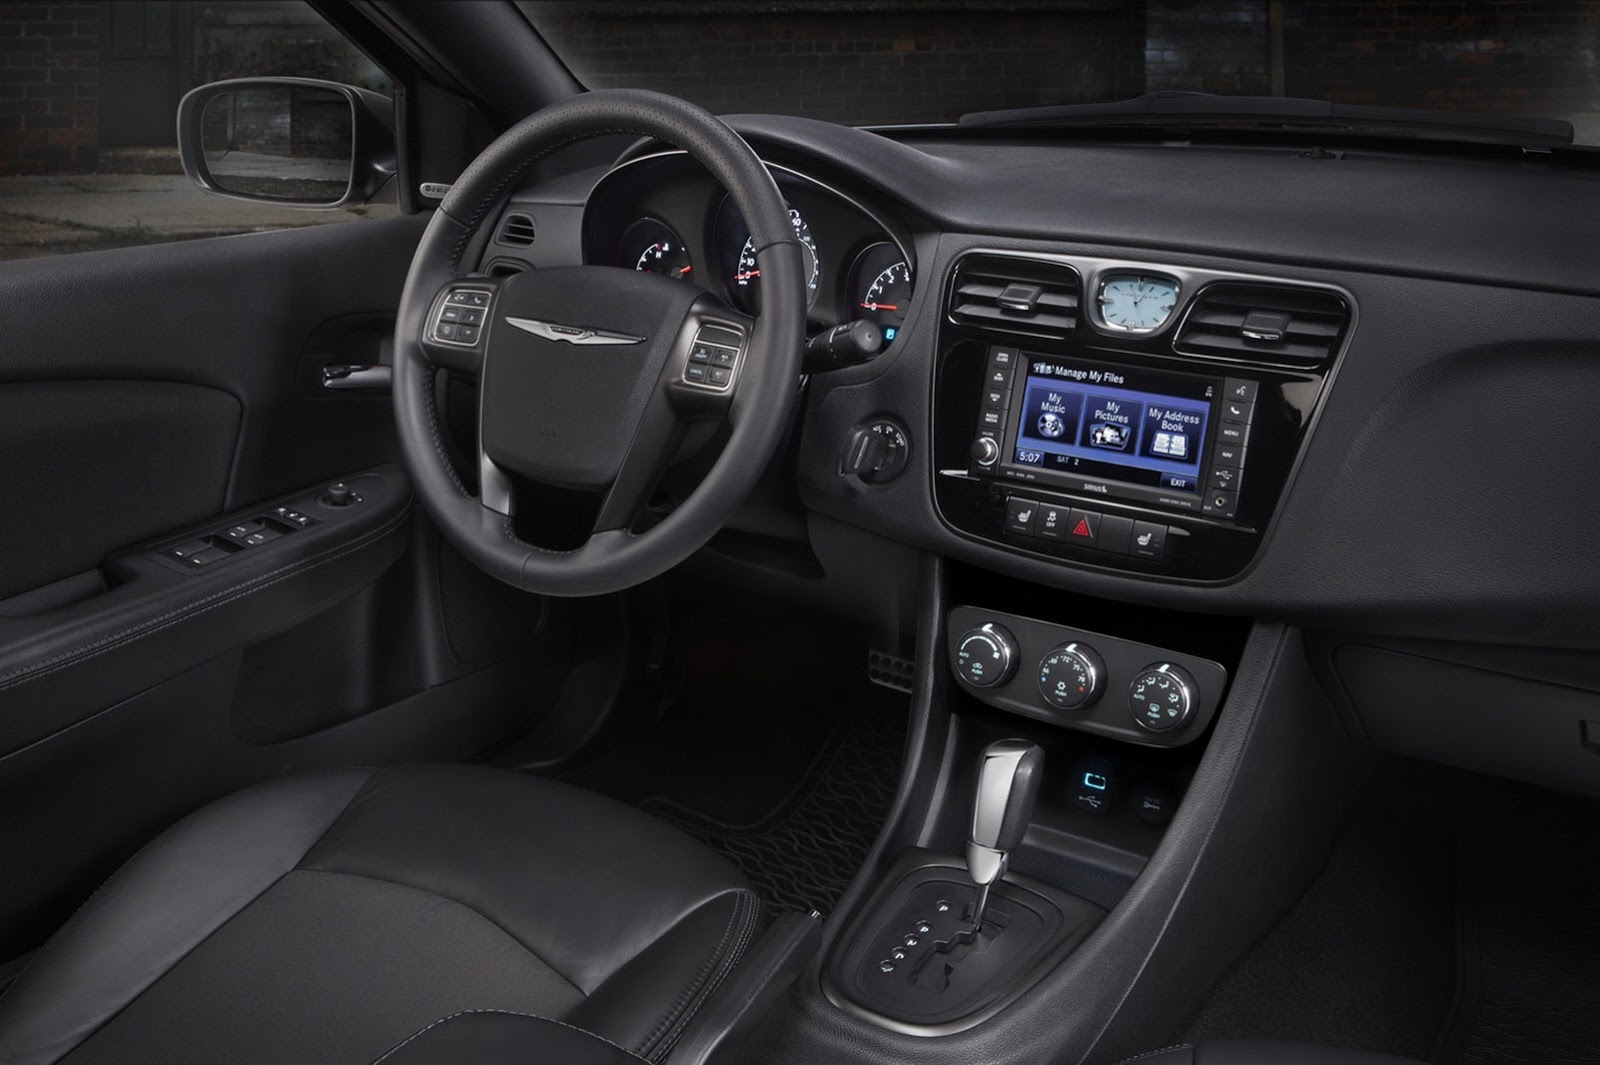 2013 5 chrysler 200 s special edition revealed ahead of detroit autoevolution